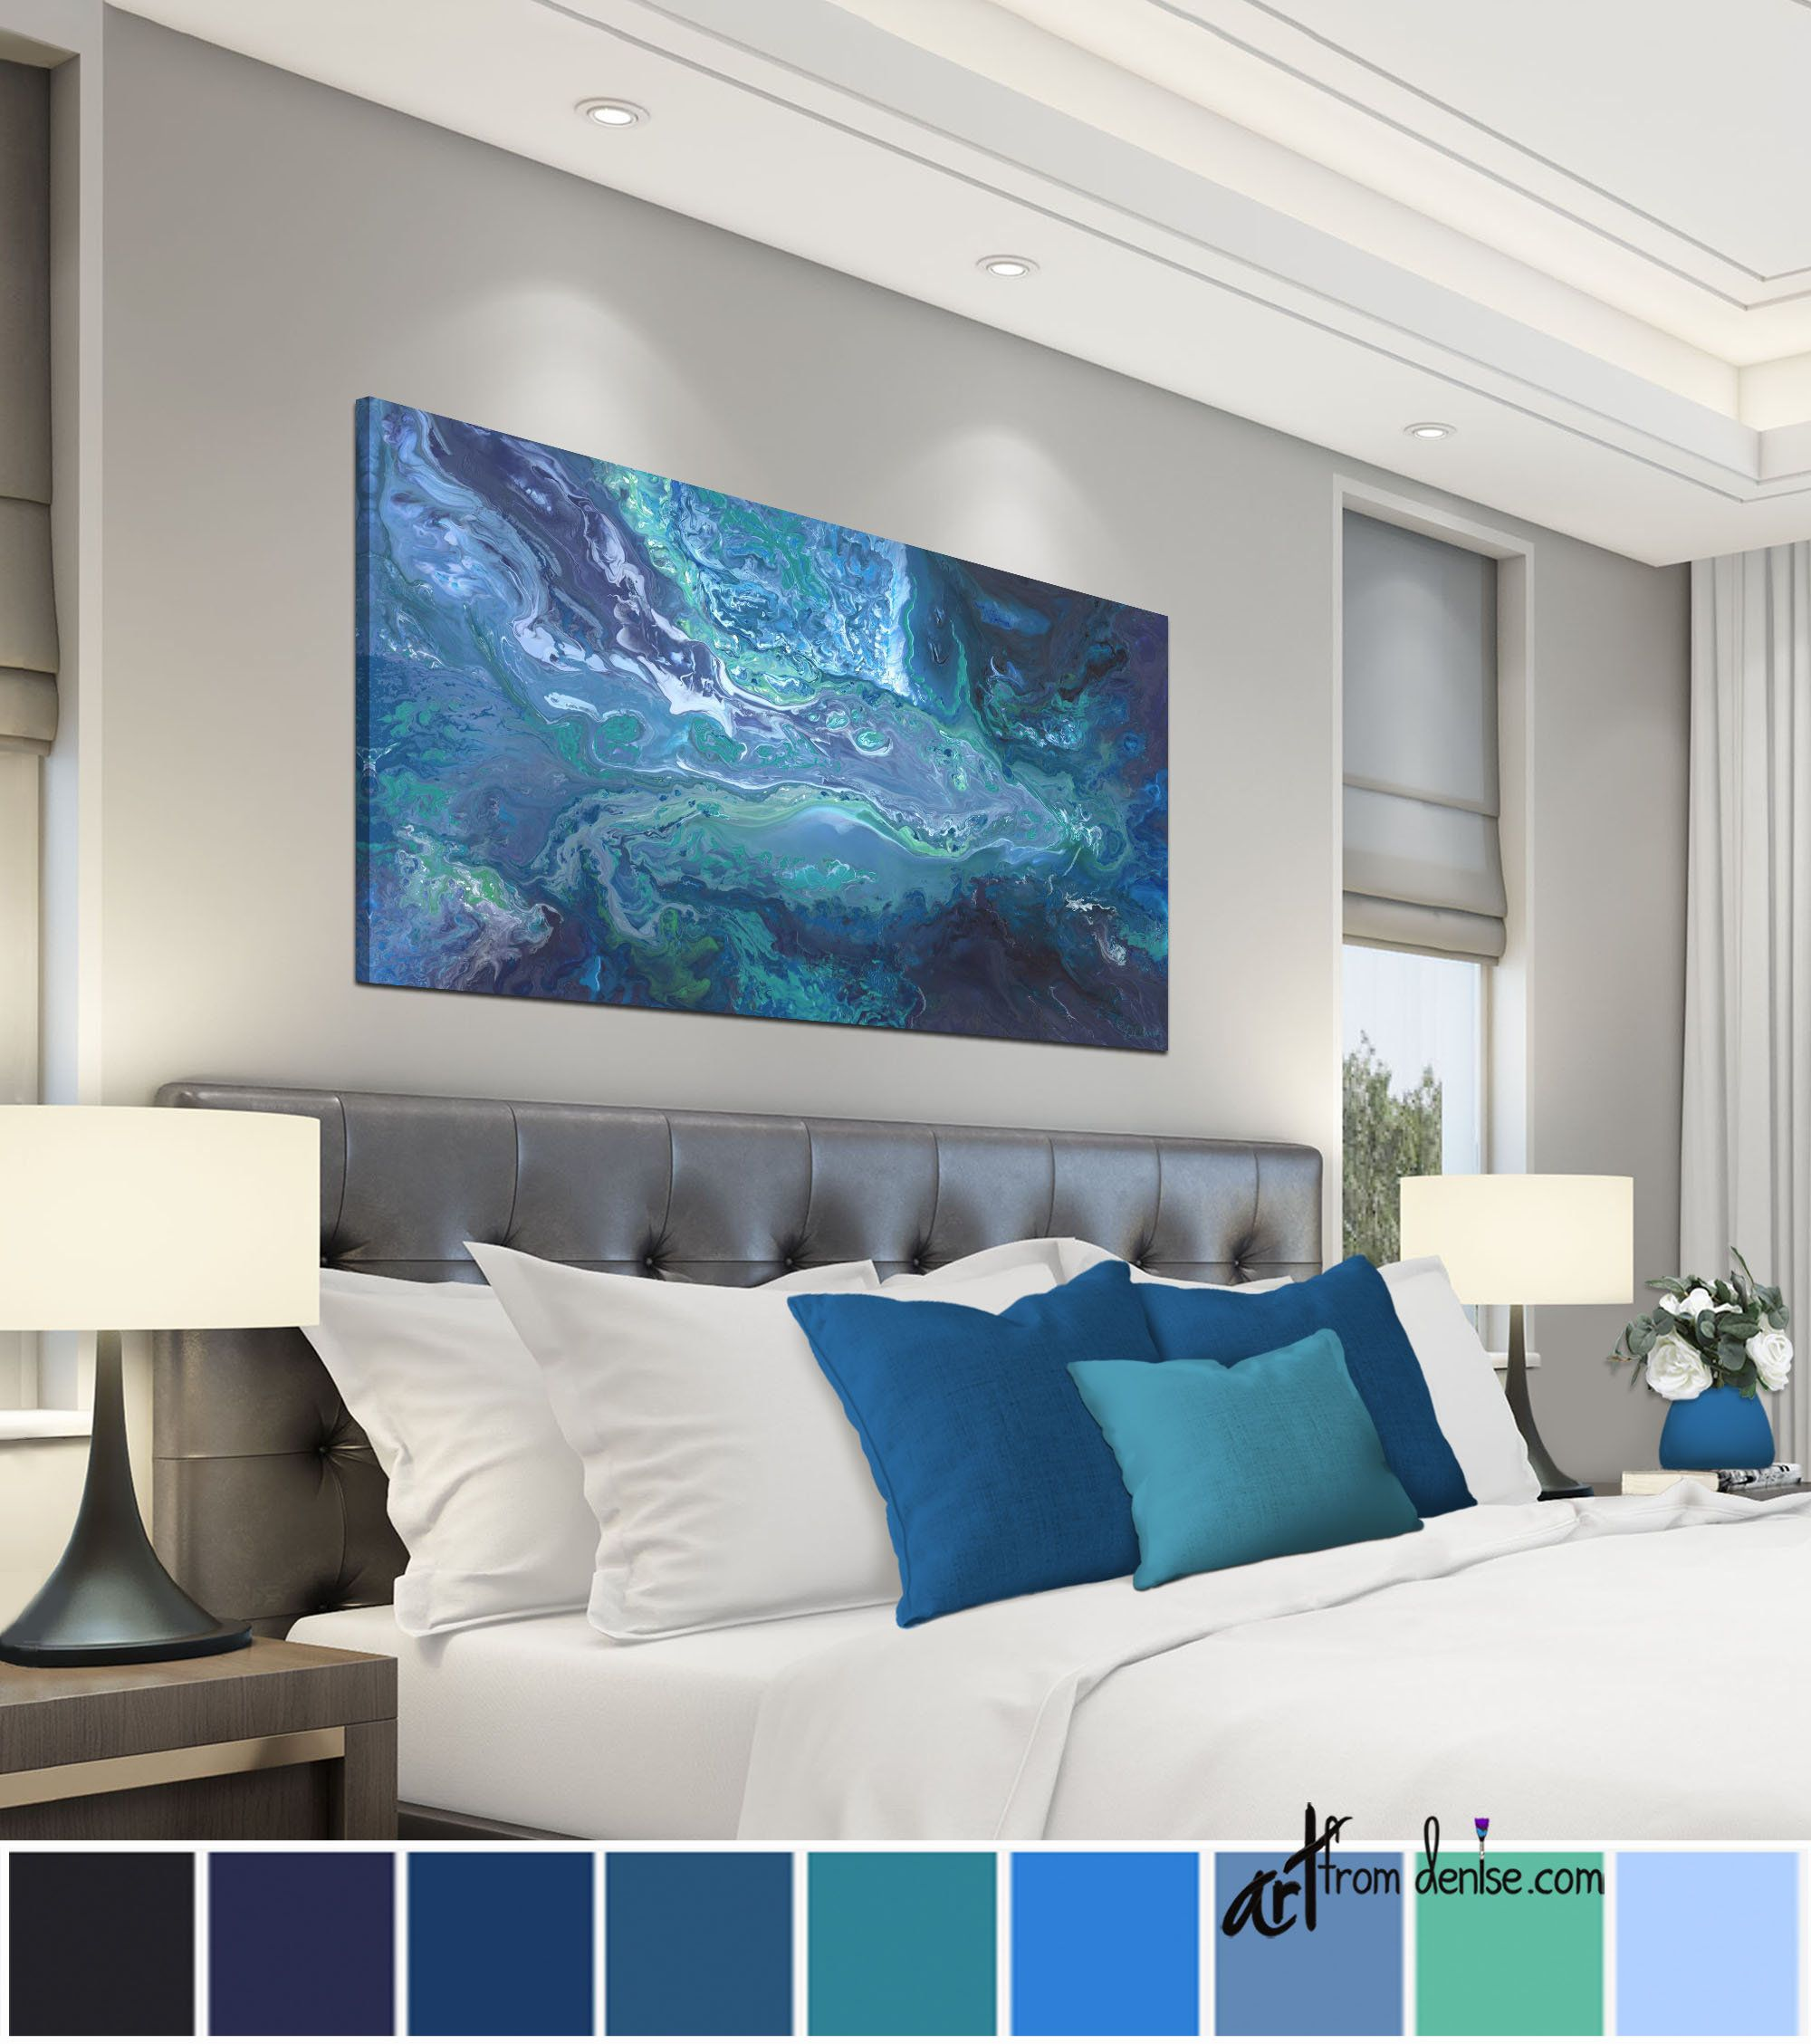 Navy Blue Gray And Teal Wall Art Large Wall Art Canvas Horizontal Bedroom Wall Decor Above Bed Art For Living Room Or Dining Pictures In 2020 Teal Wall Art Blue Abstract #teal #wall #art #for #living #room